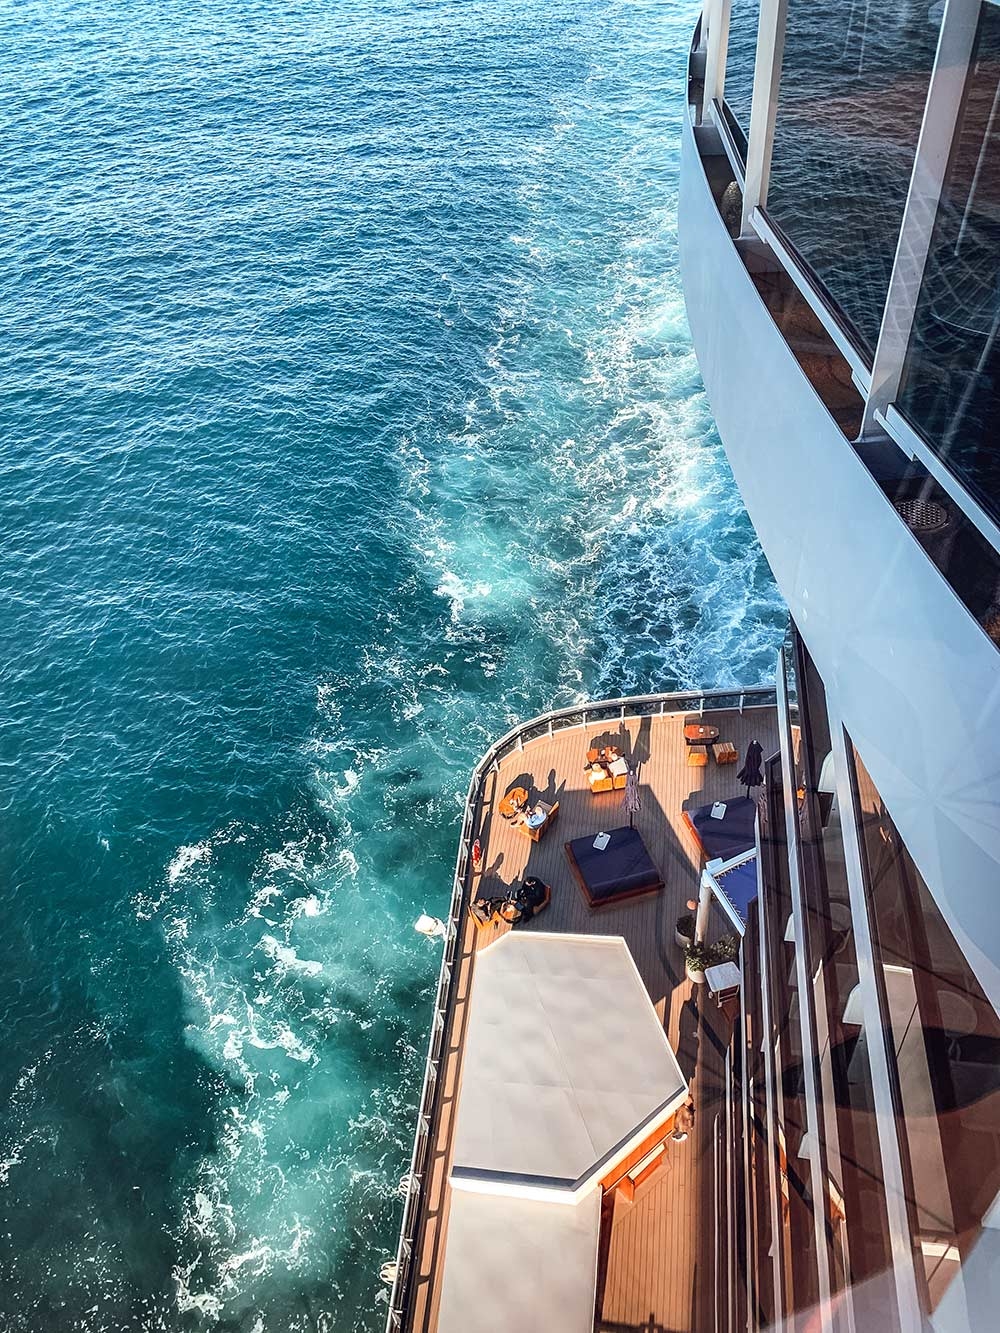 View of back of ship onboard Virgin Voyages Scarlet Lady cruise ship